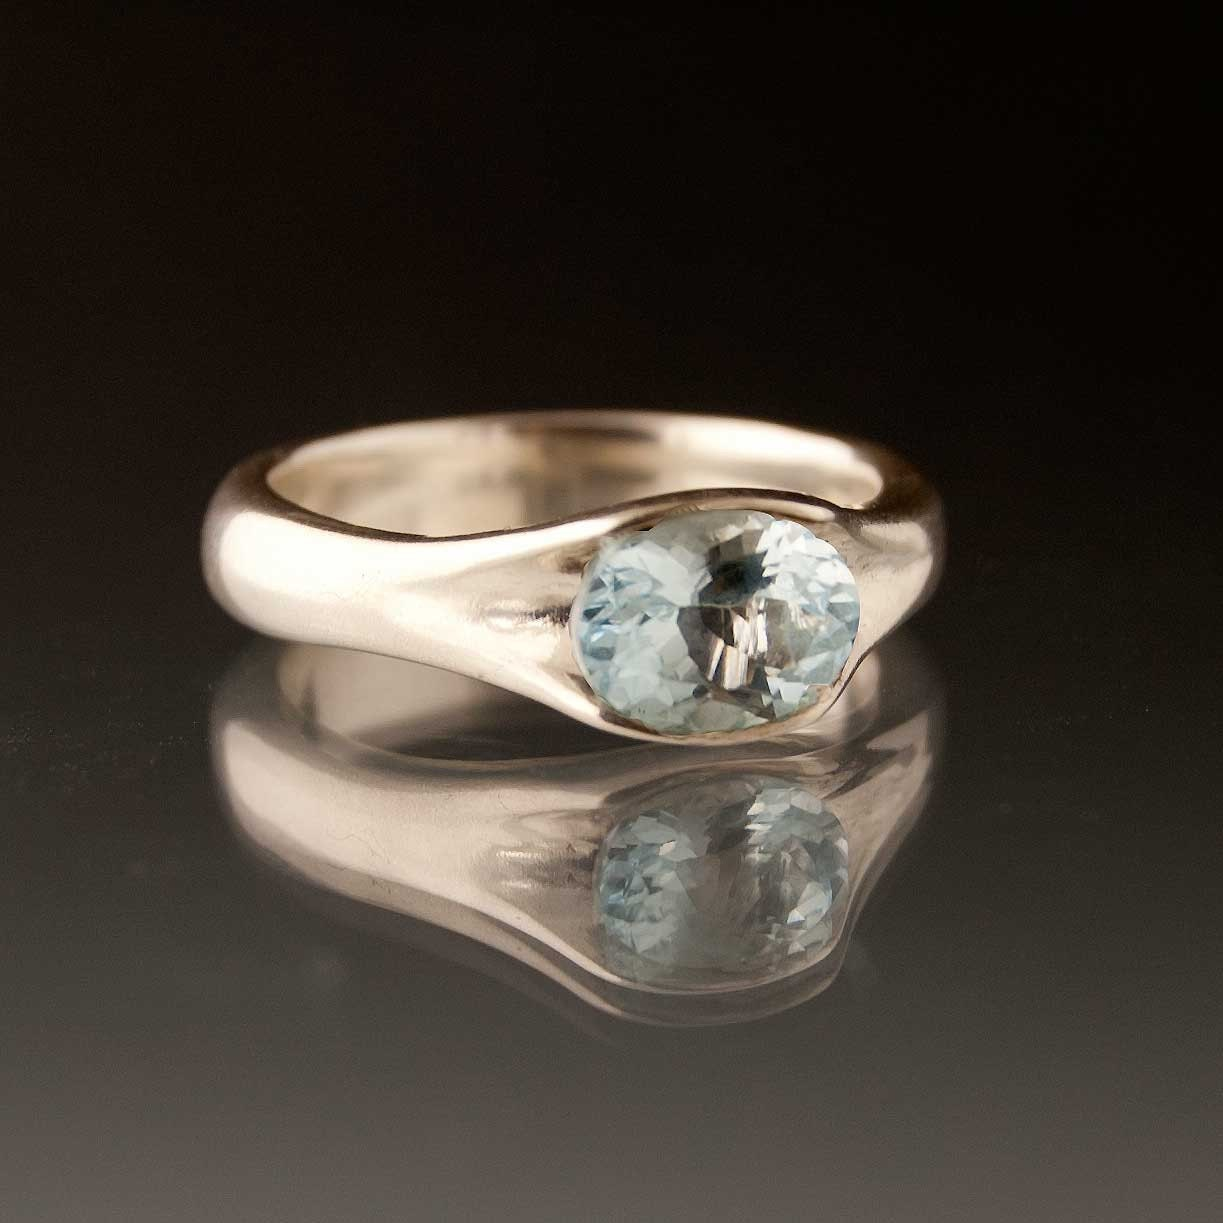 Aquamarine engagement rings is you probably know the idea that the engagement ring should cost. Aquamarine engagement rings are  did you also know